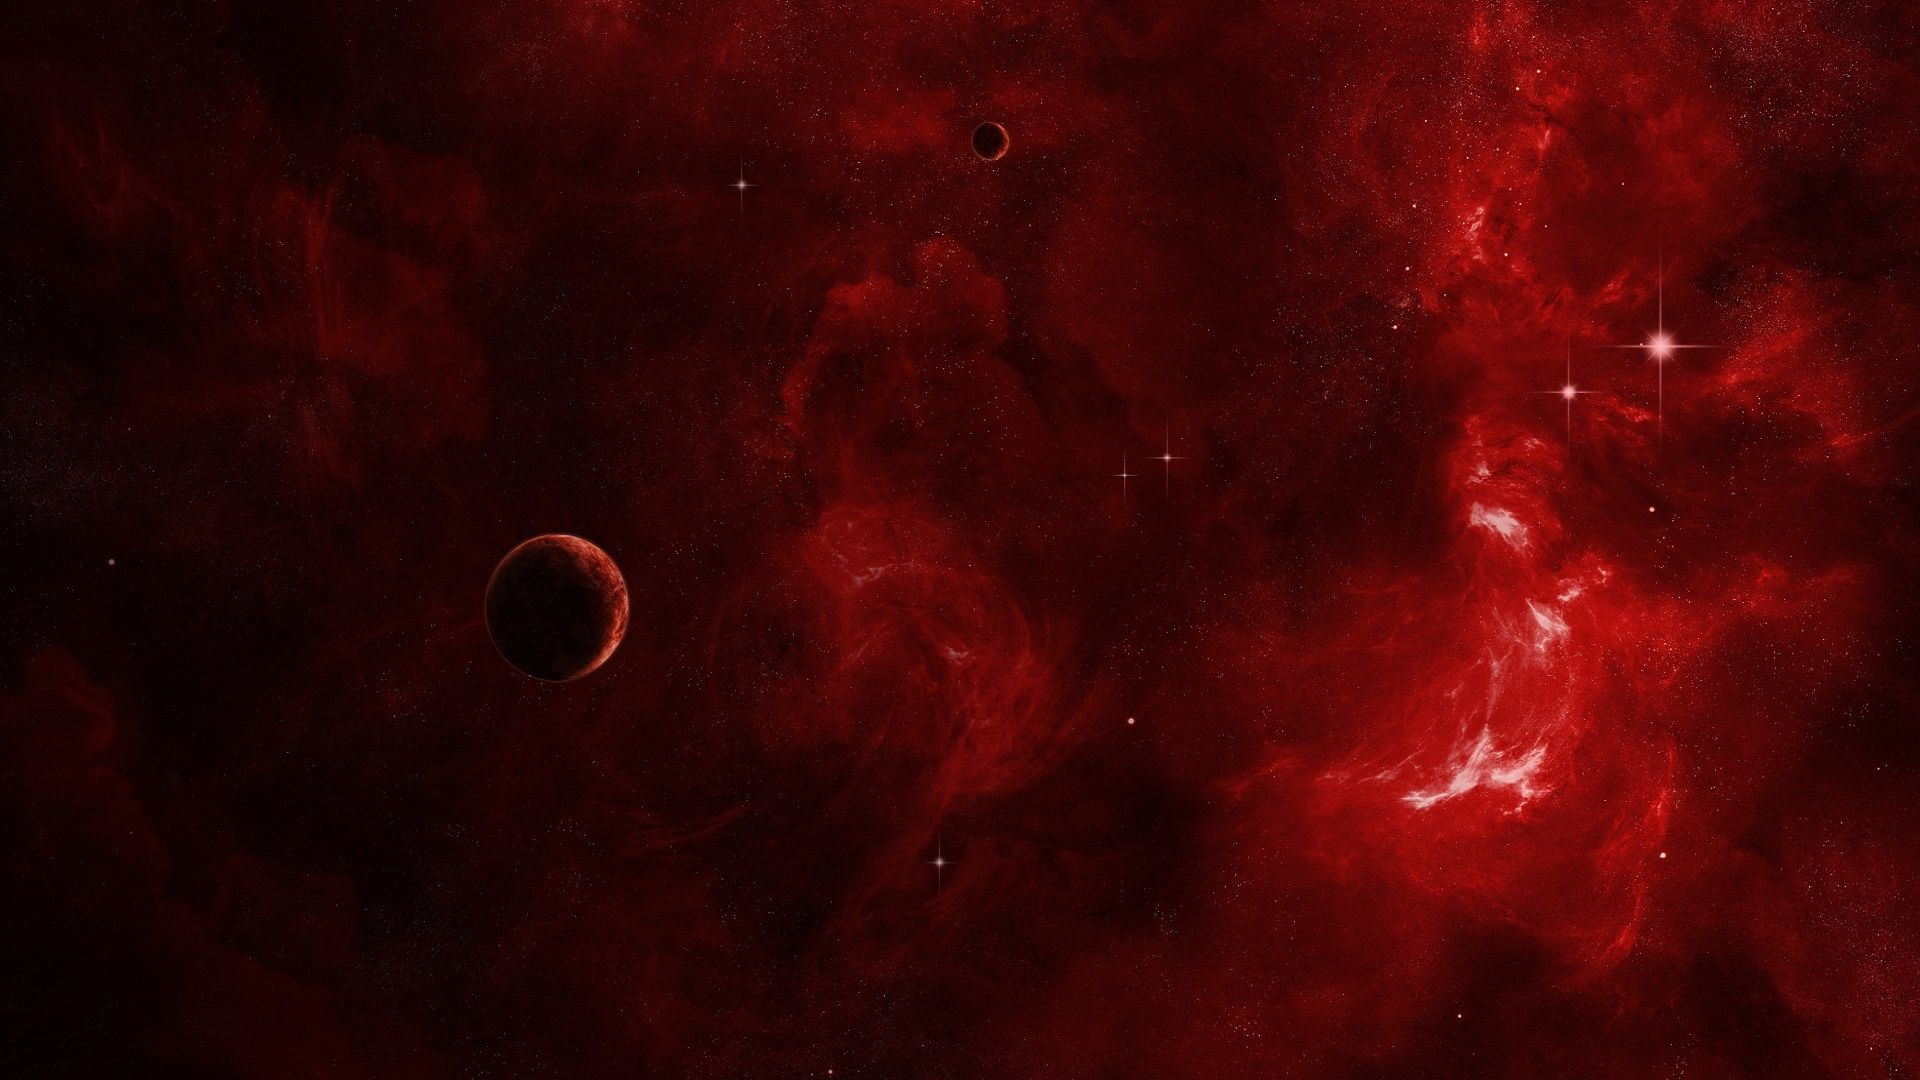 Red Nebula Download Hd Wallpapers